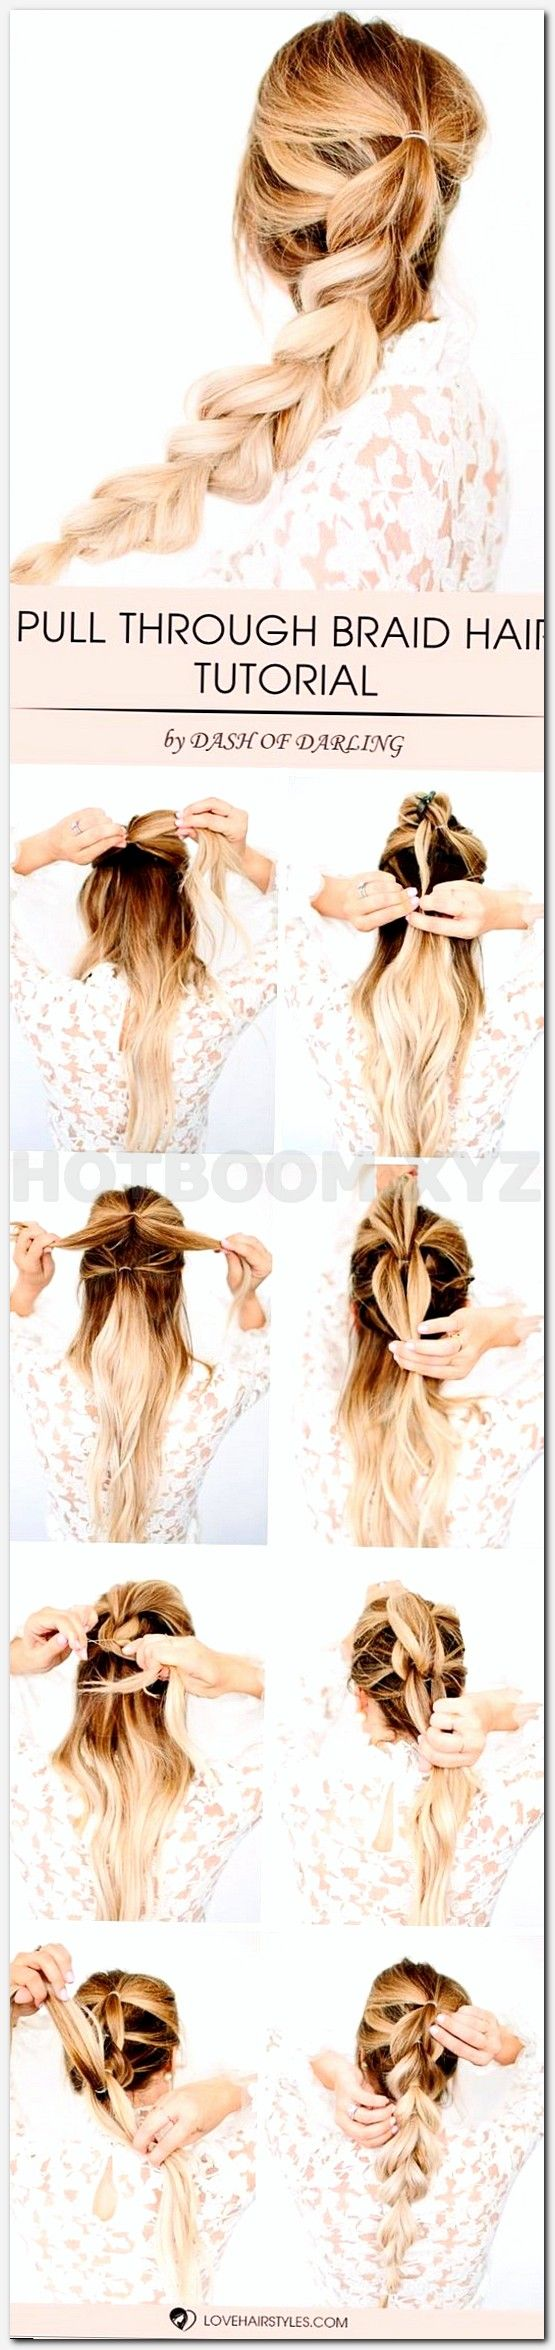 Hairstyles glaminati media blanketcoveredlovertumblr